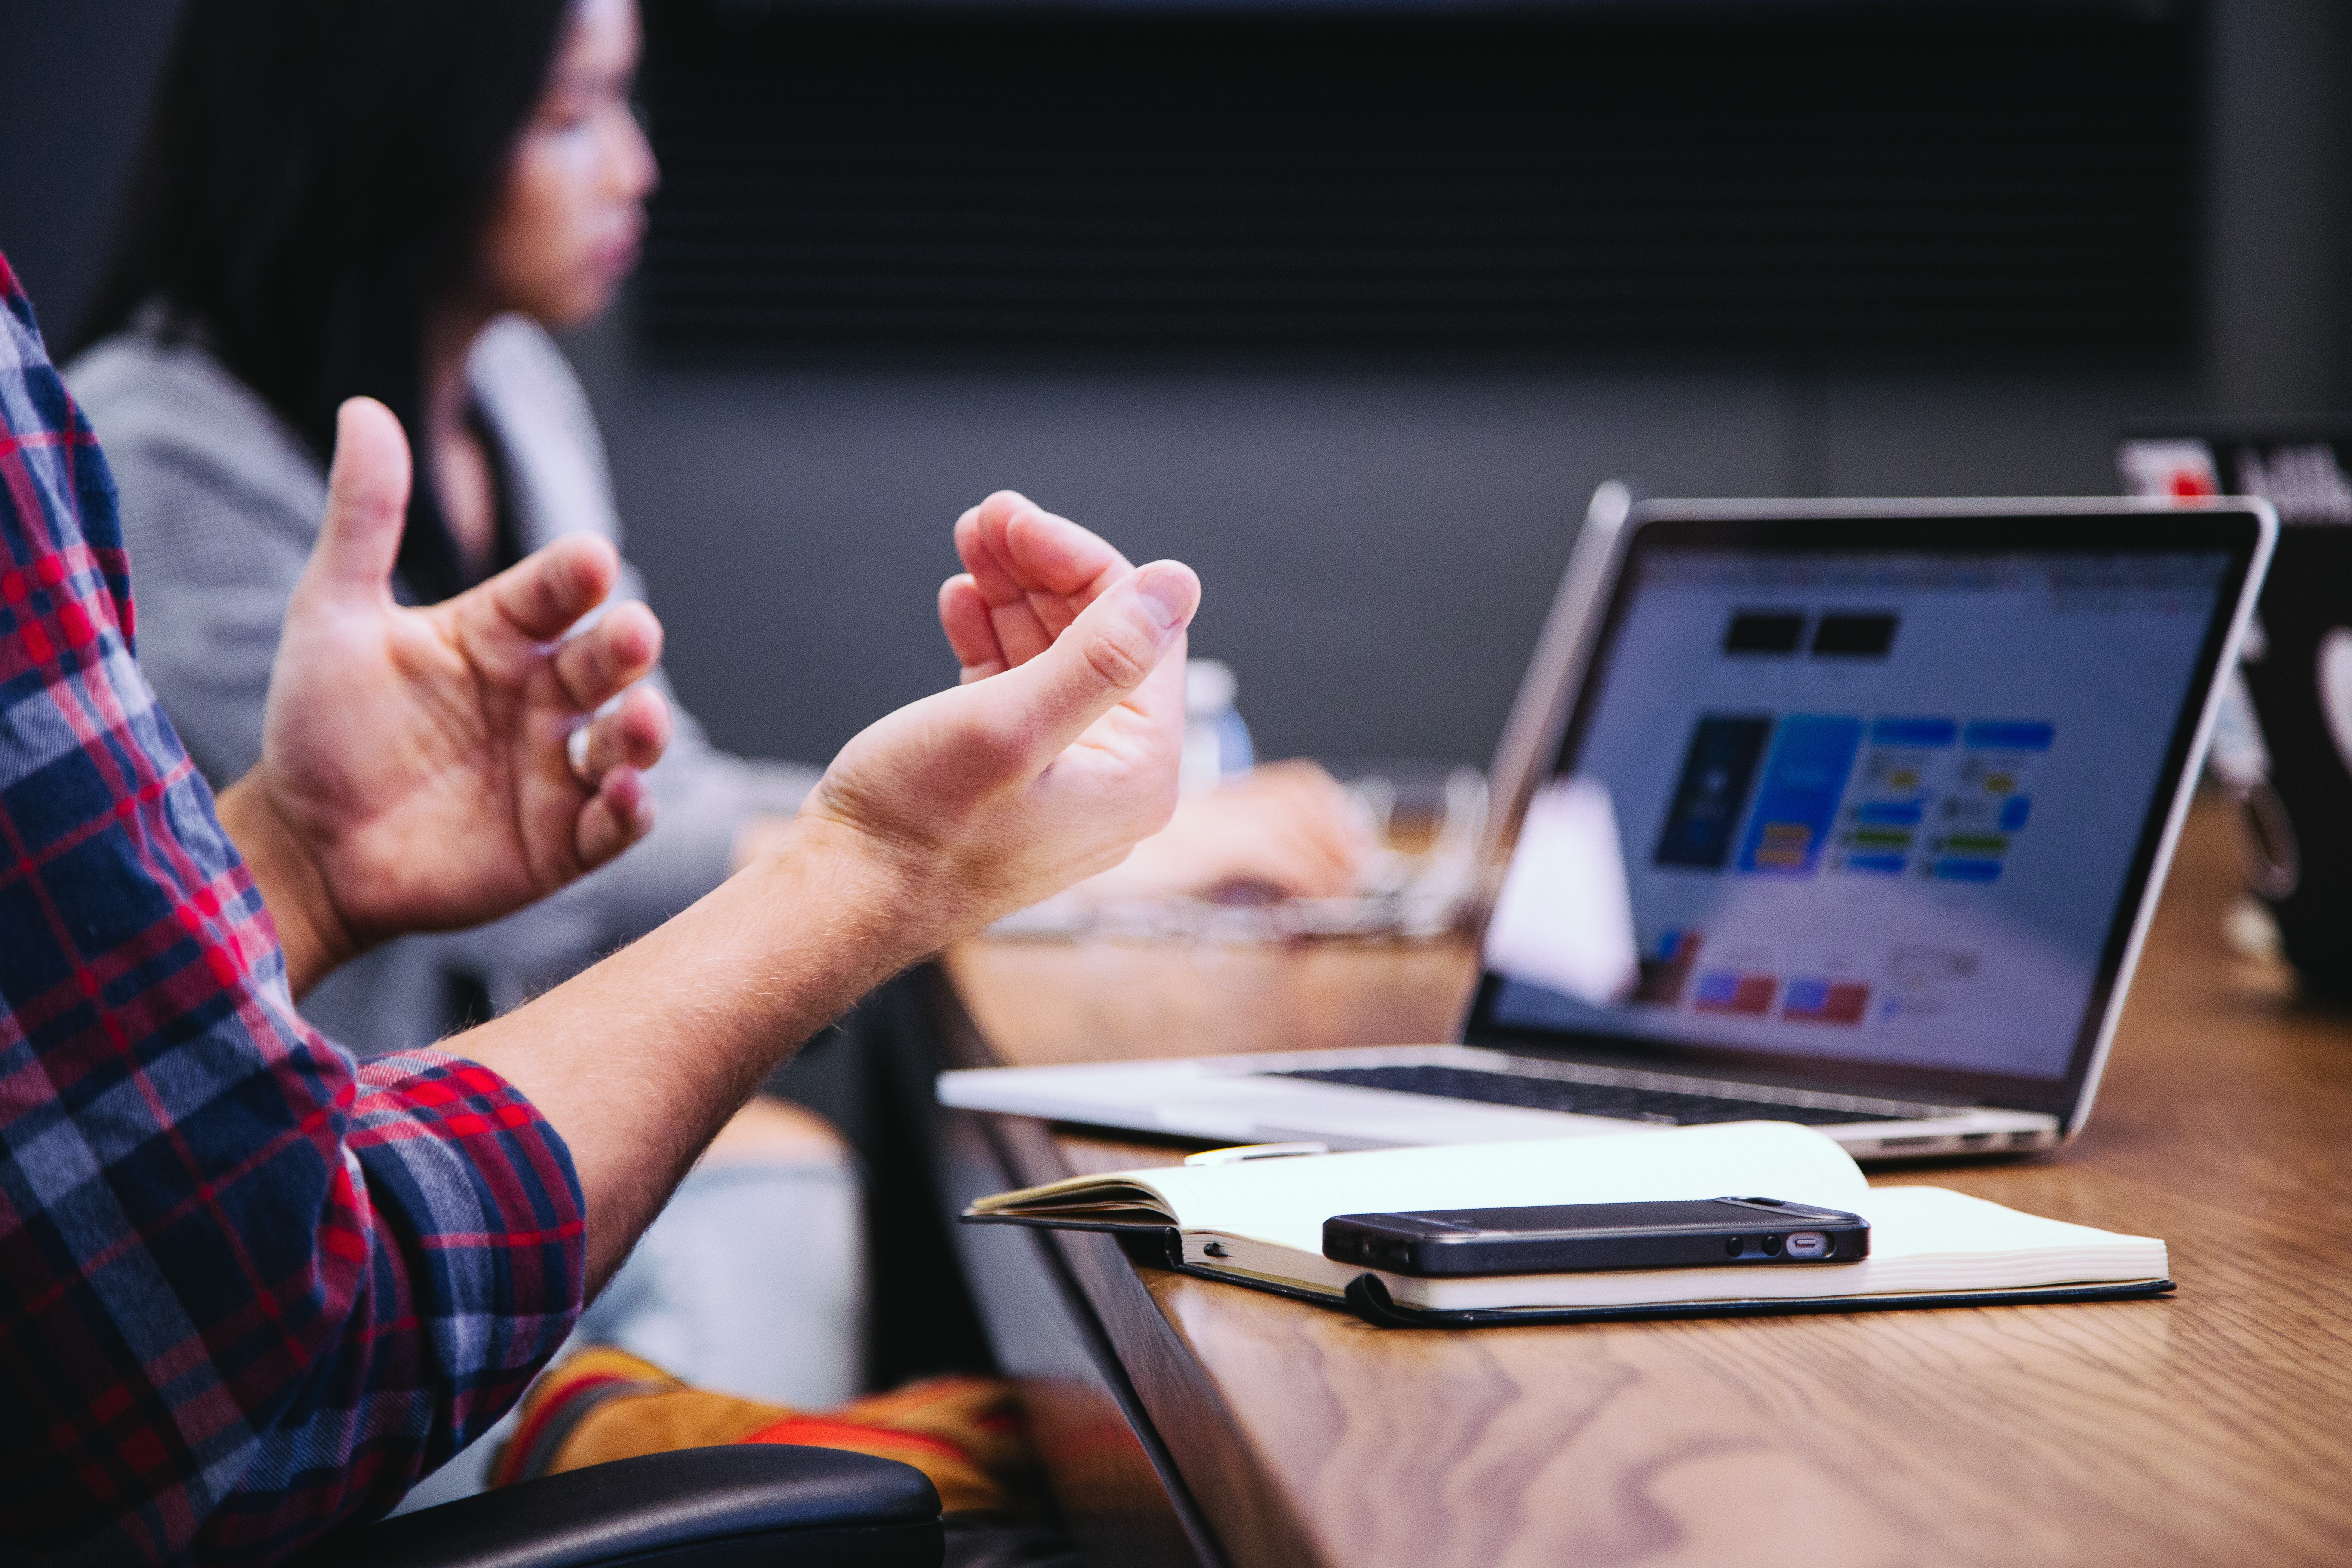 How to Keep Meetings Productive